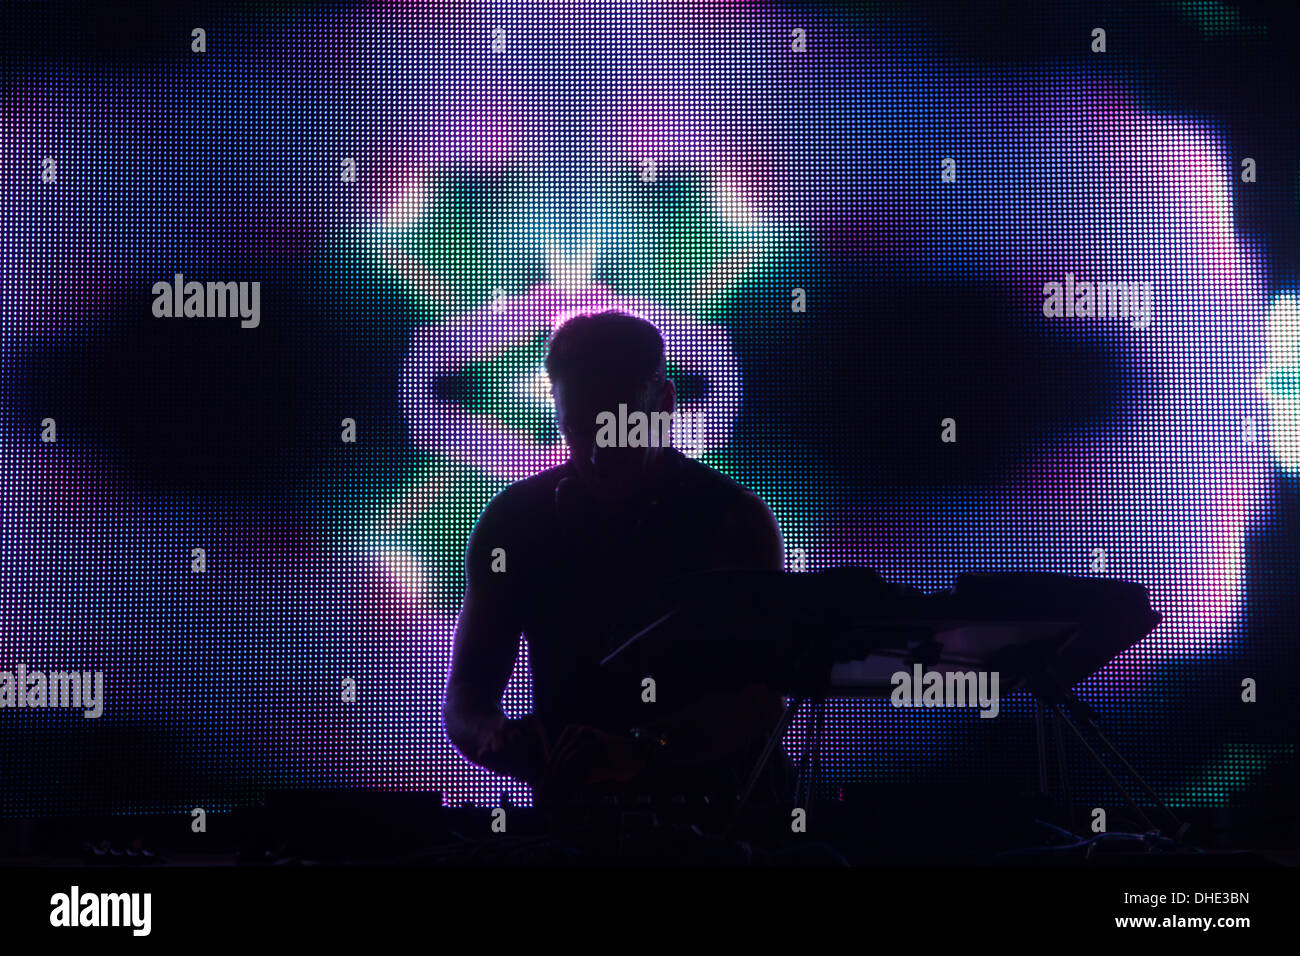 disk jockey dj screens color music party fun dance entertain entertainment colorful display change computer arrange rhythm cd - Stock Image